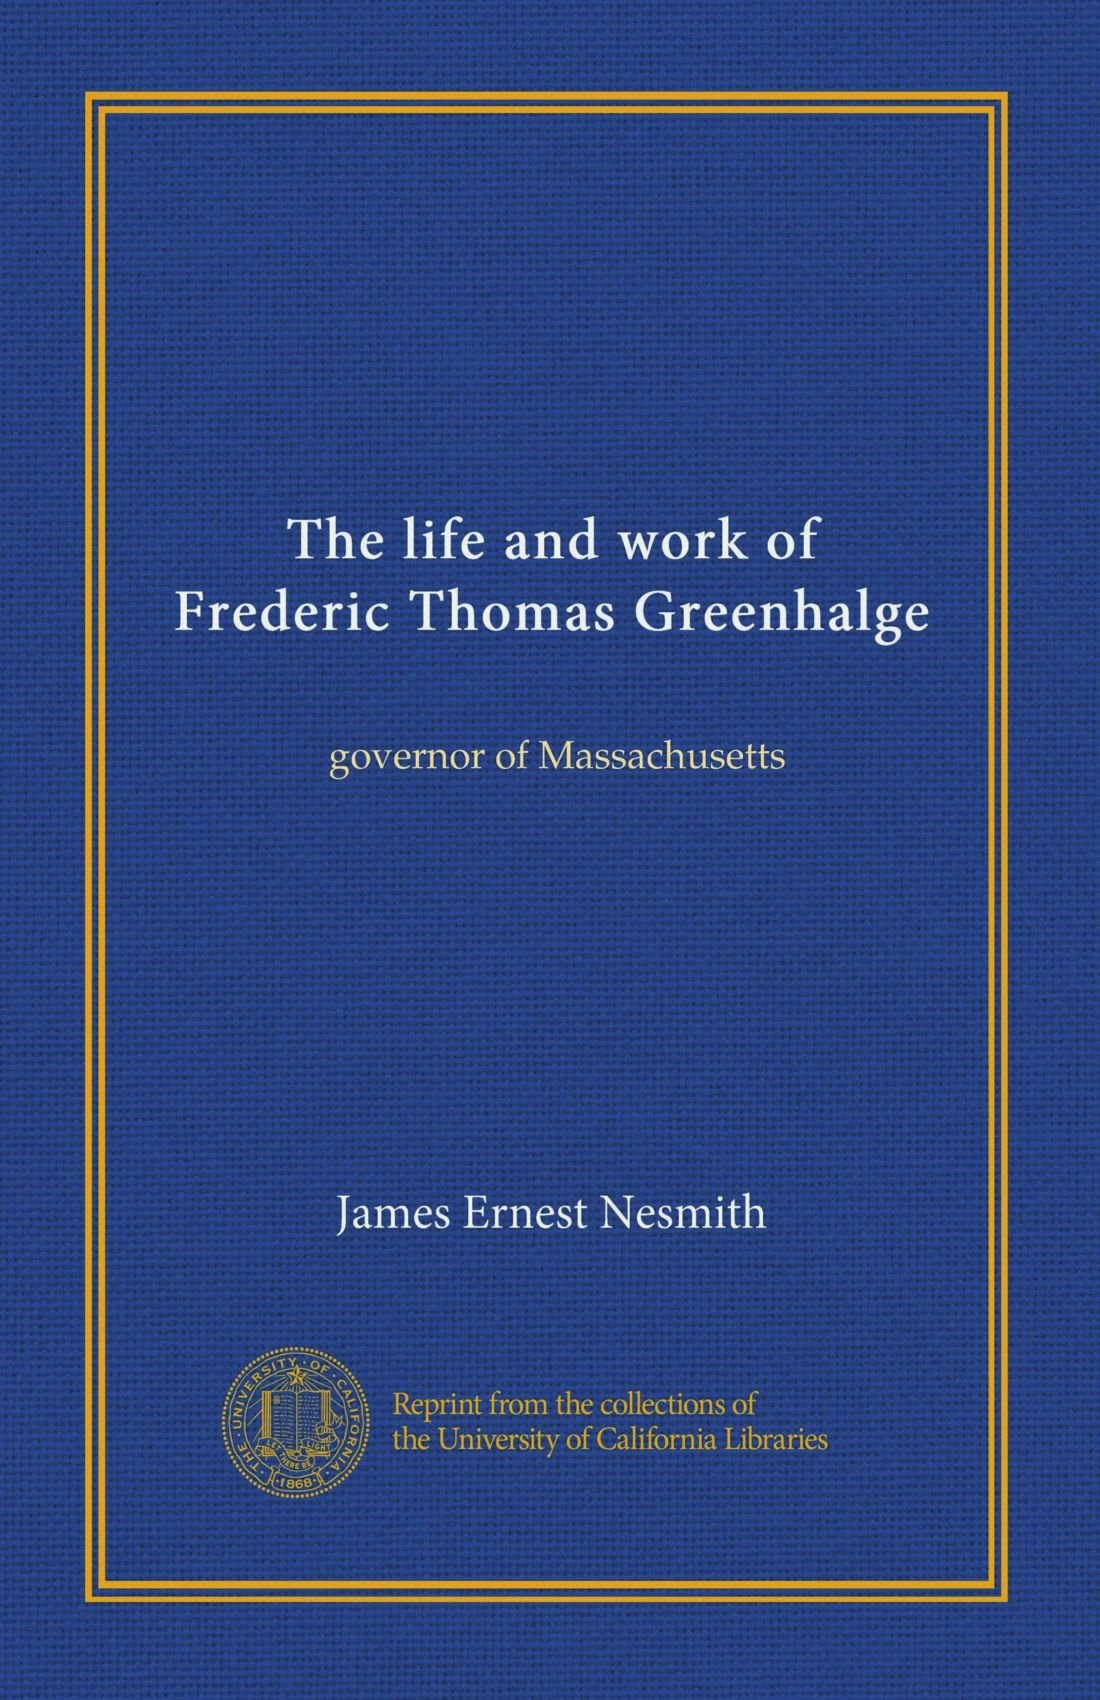 The life and work of Frederic Thomas Greenhalge: governor of Massachusetts